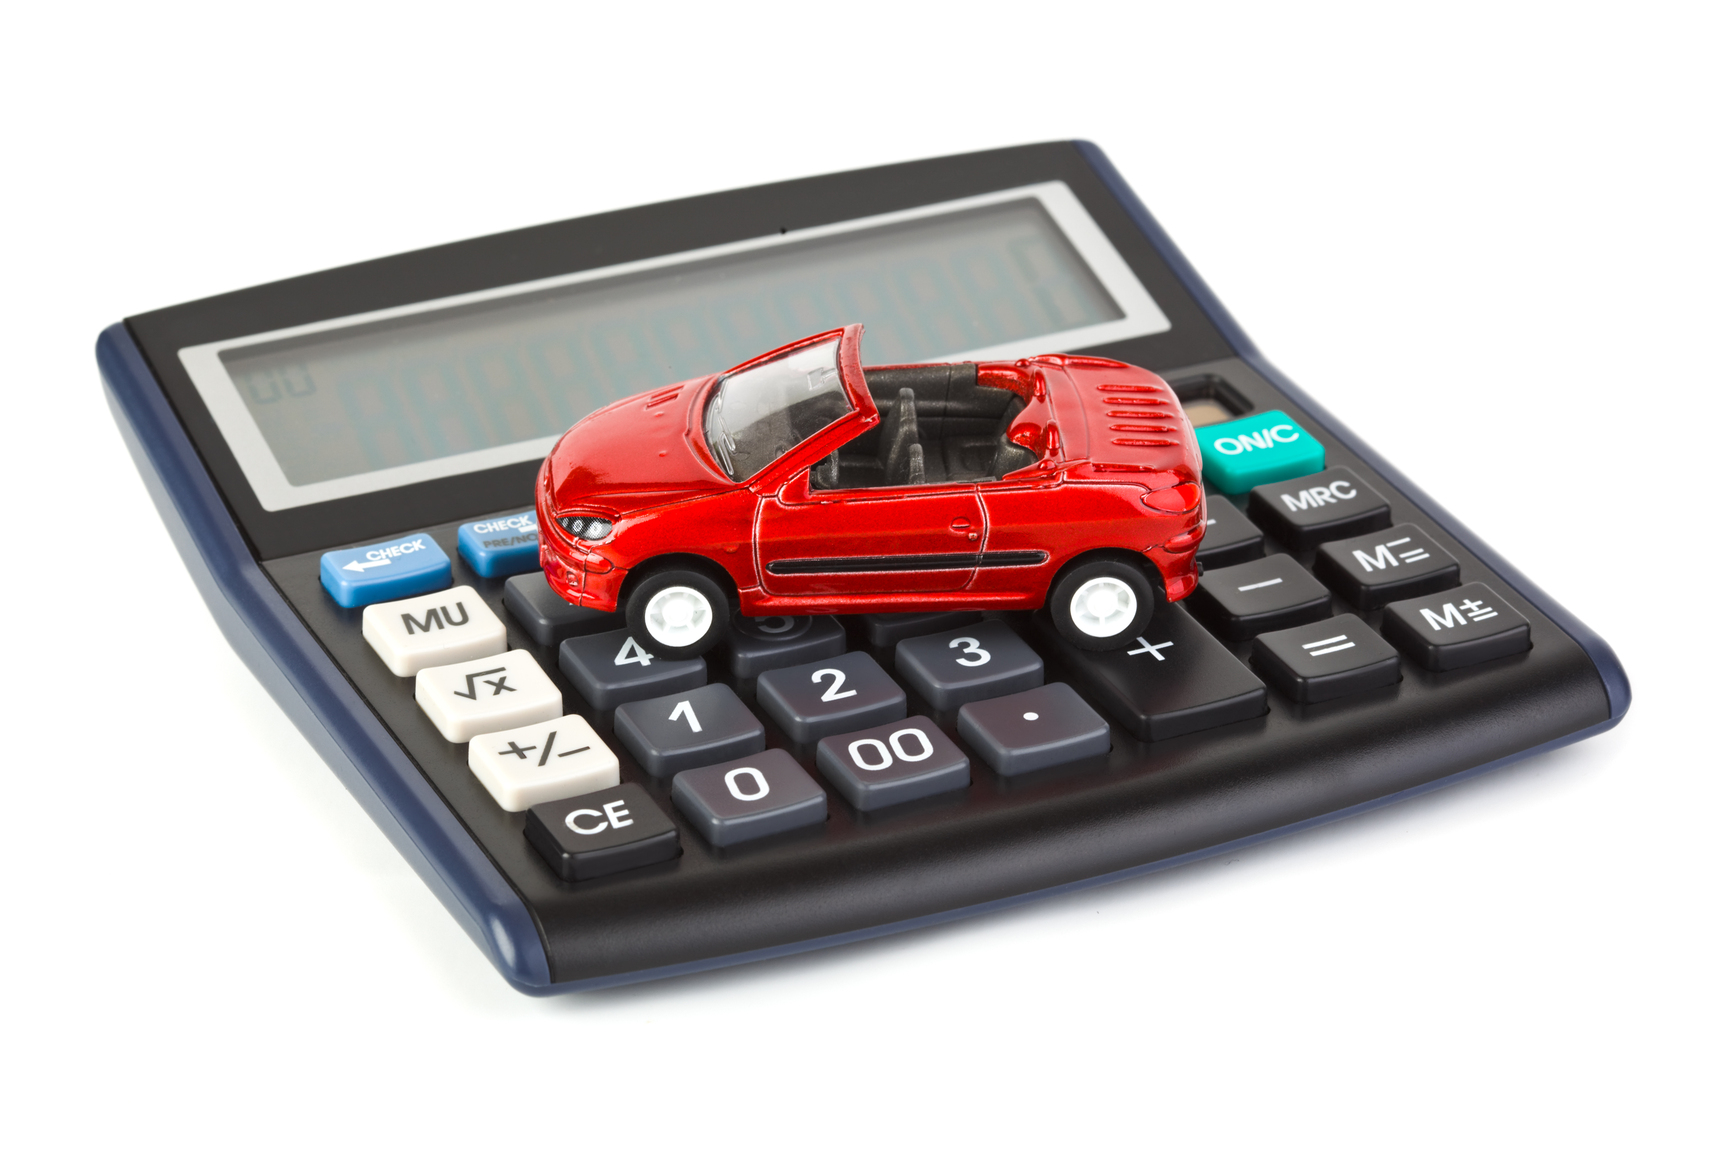 Calculator and toy car